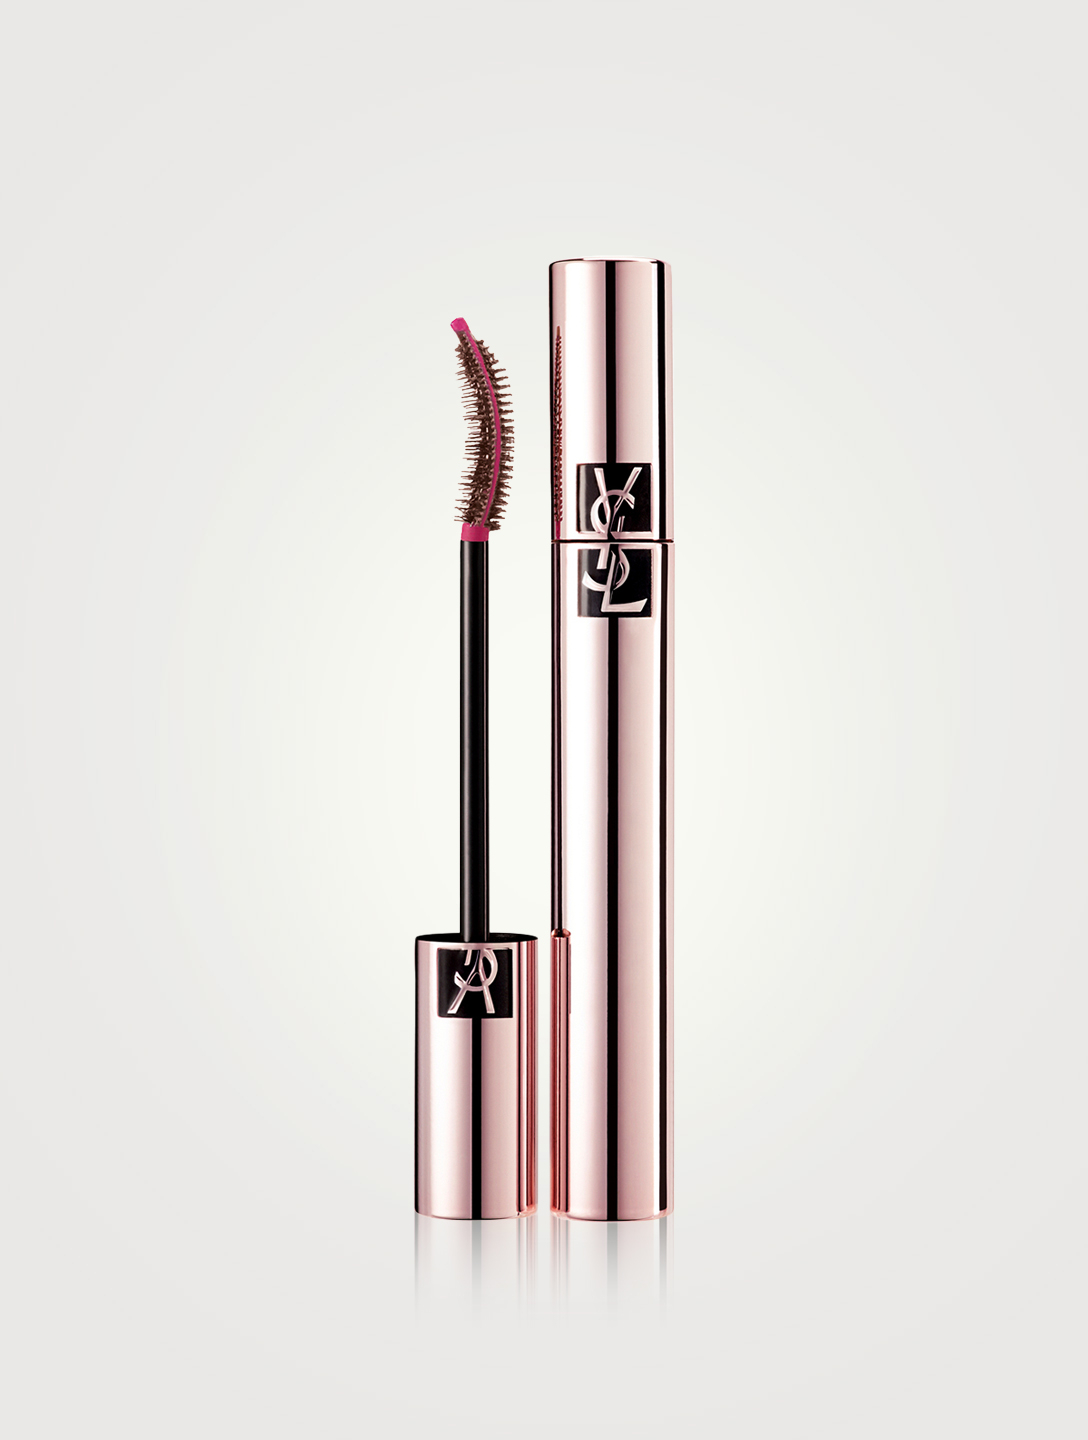 YVES SAINT LAURENT Mascara Volume Effet Faux Cils The Curler Beauté Marron